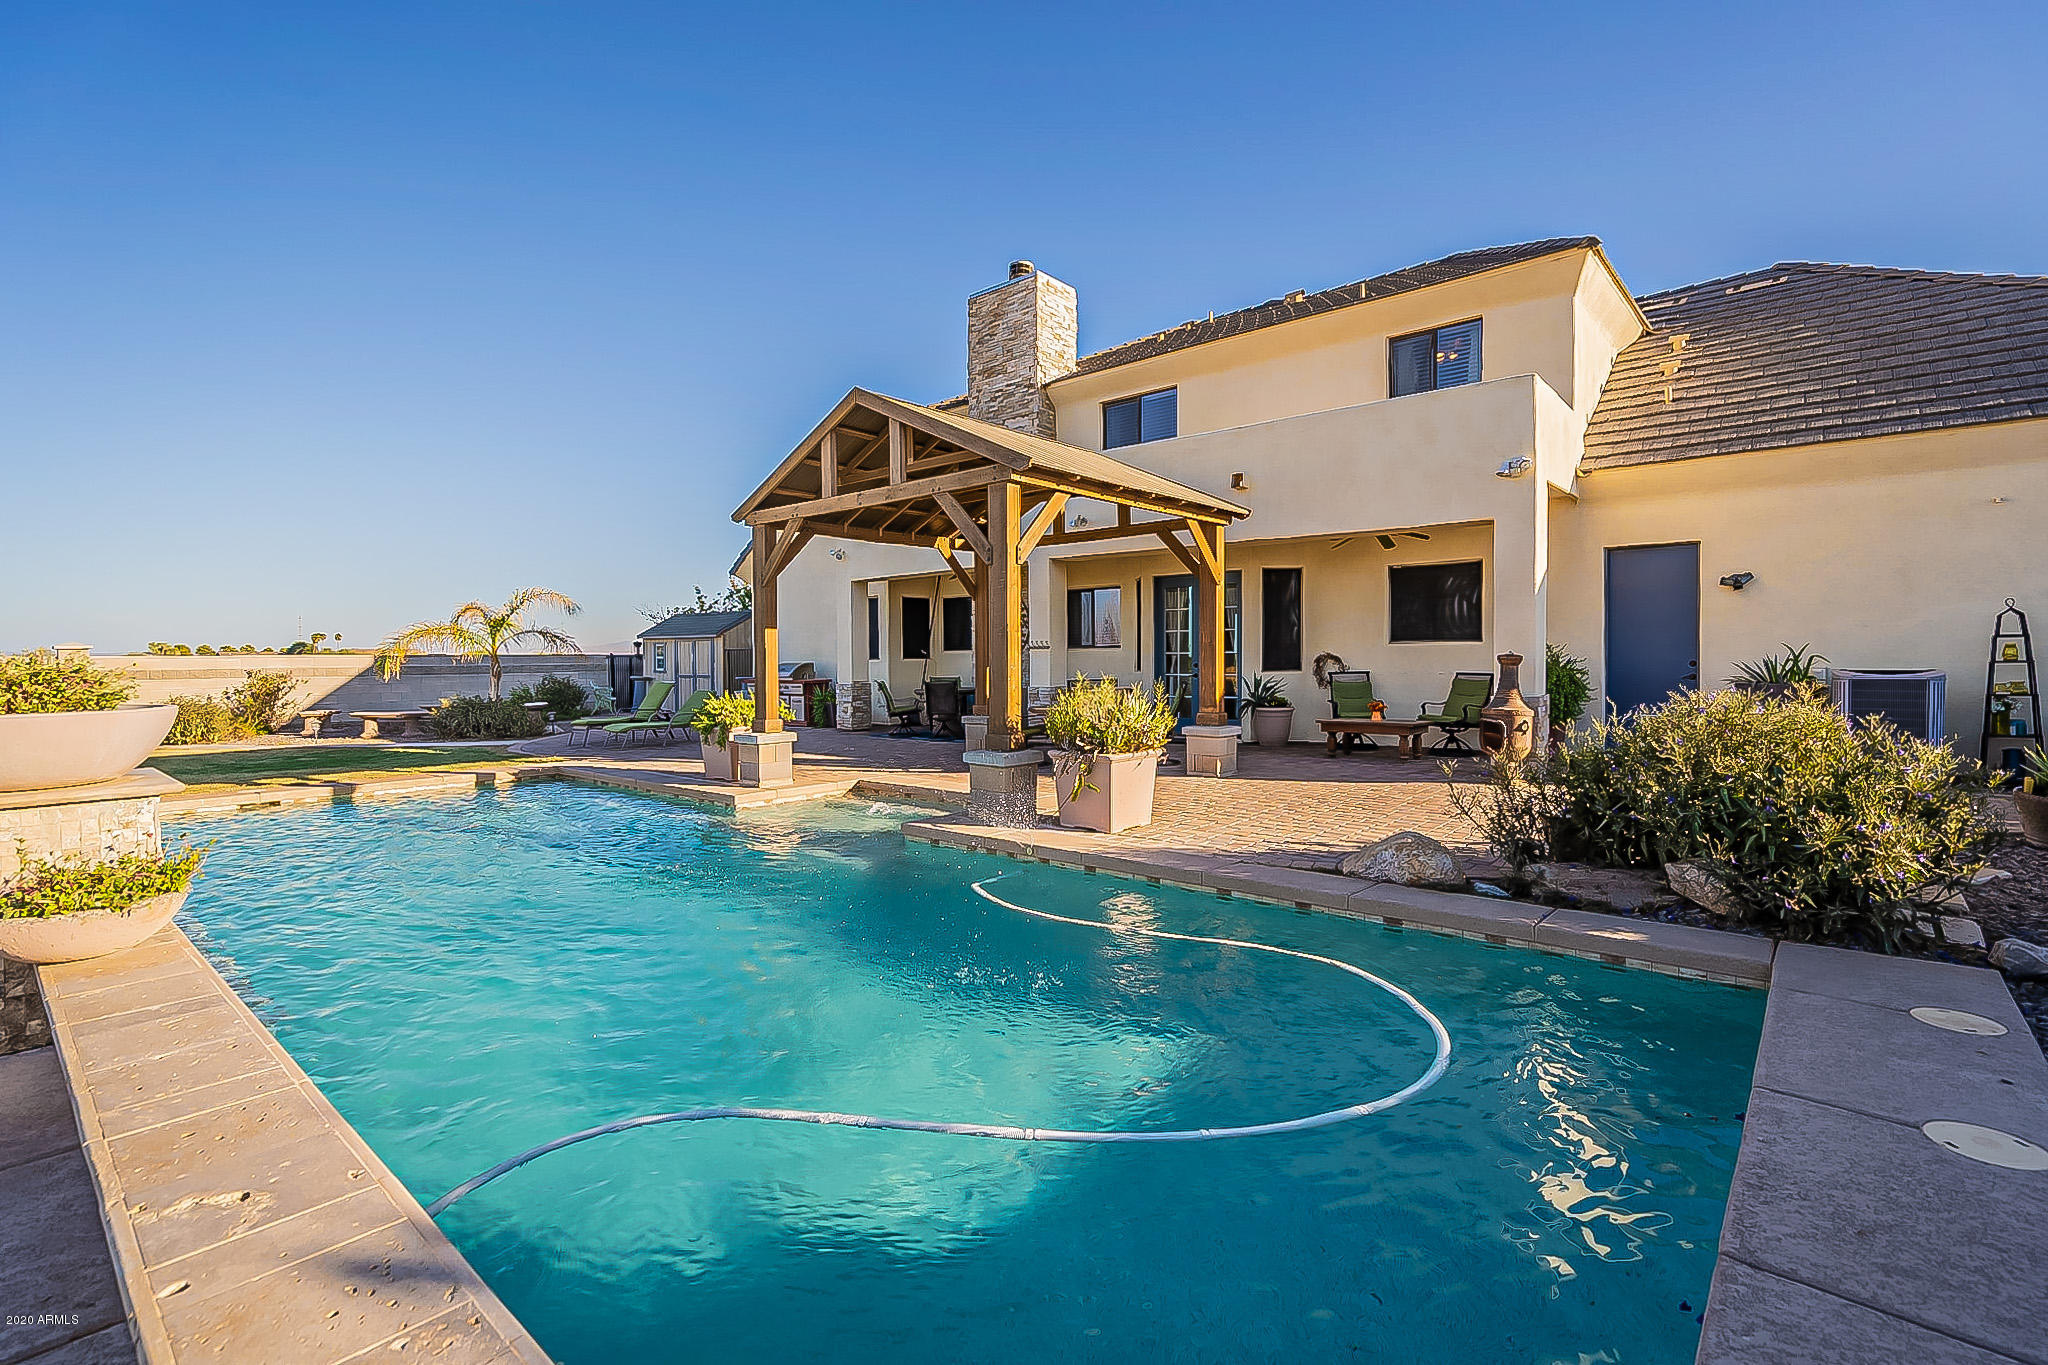 MLS 6147917 3770 E Graythorn Way, Coolidge, AZ 85128 Coolidge AZ Pool